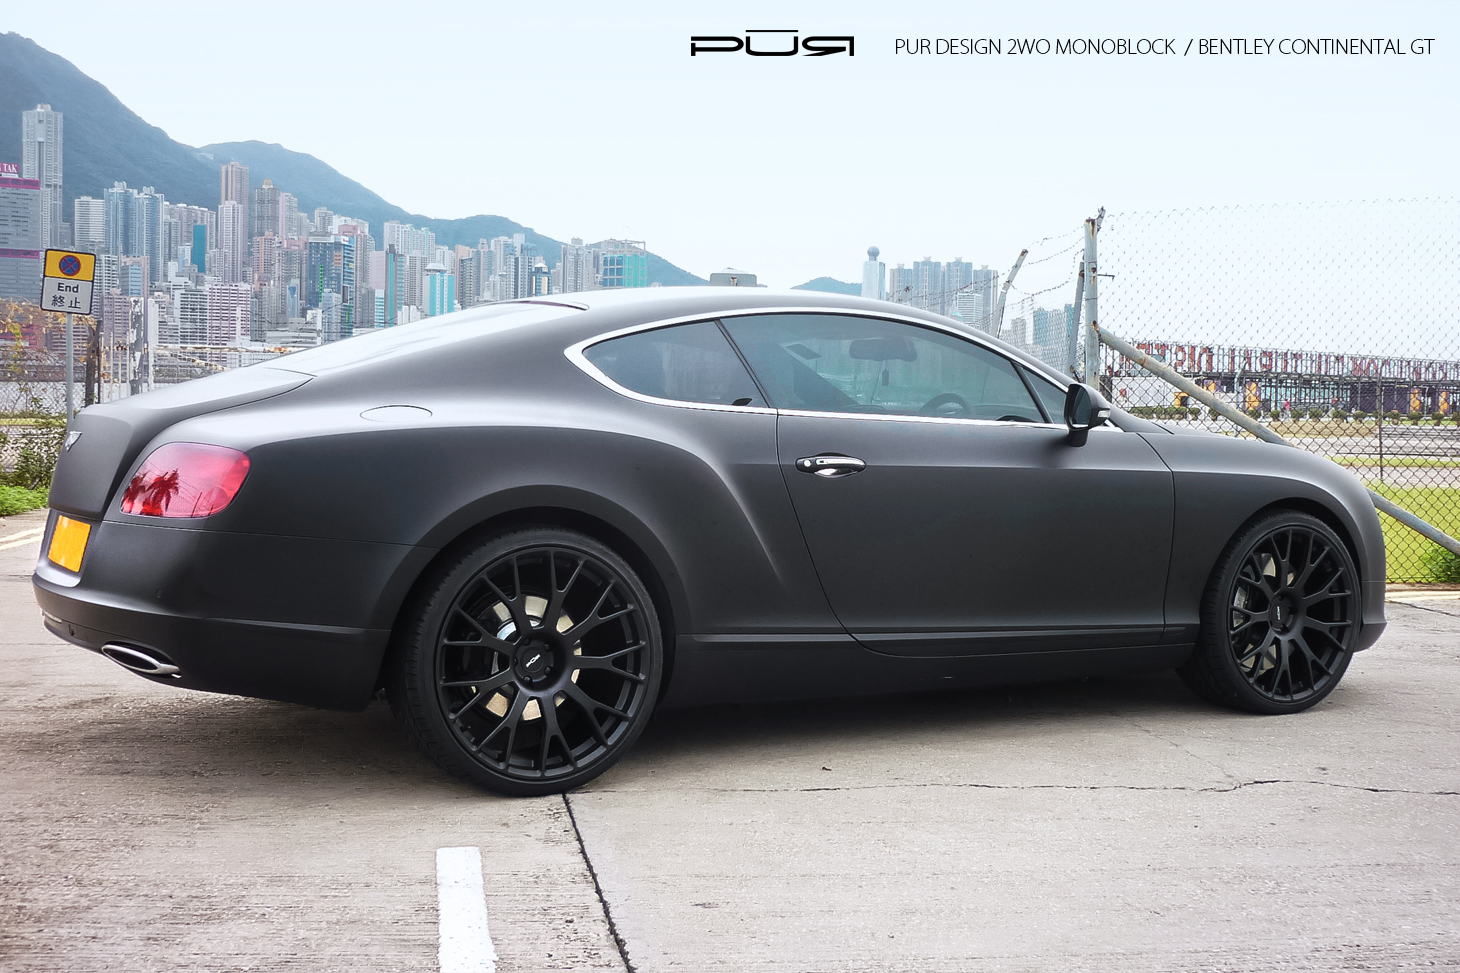 Bentley Continental GTC wheels #1